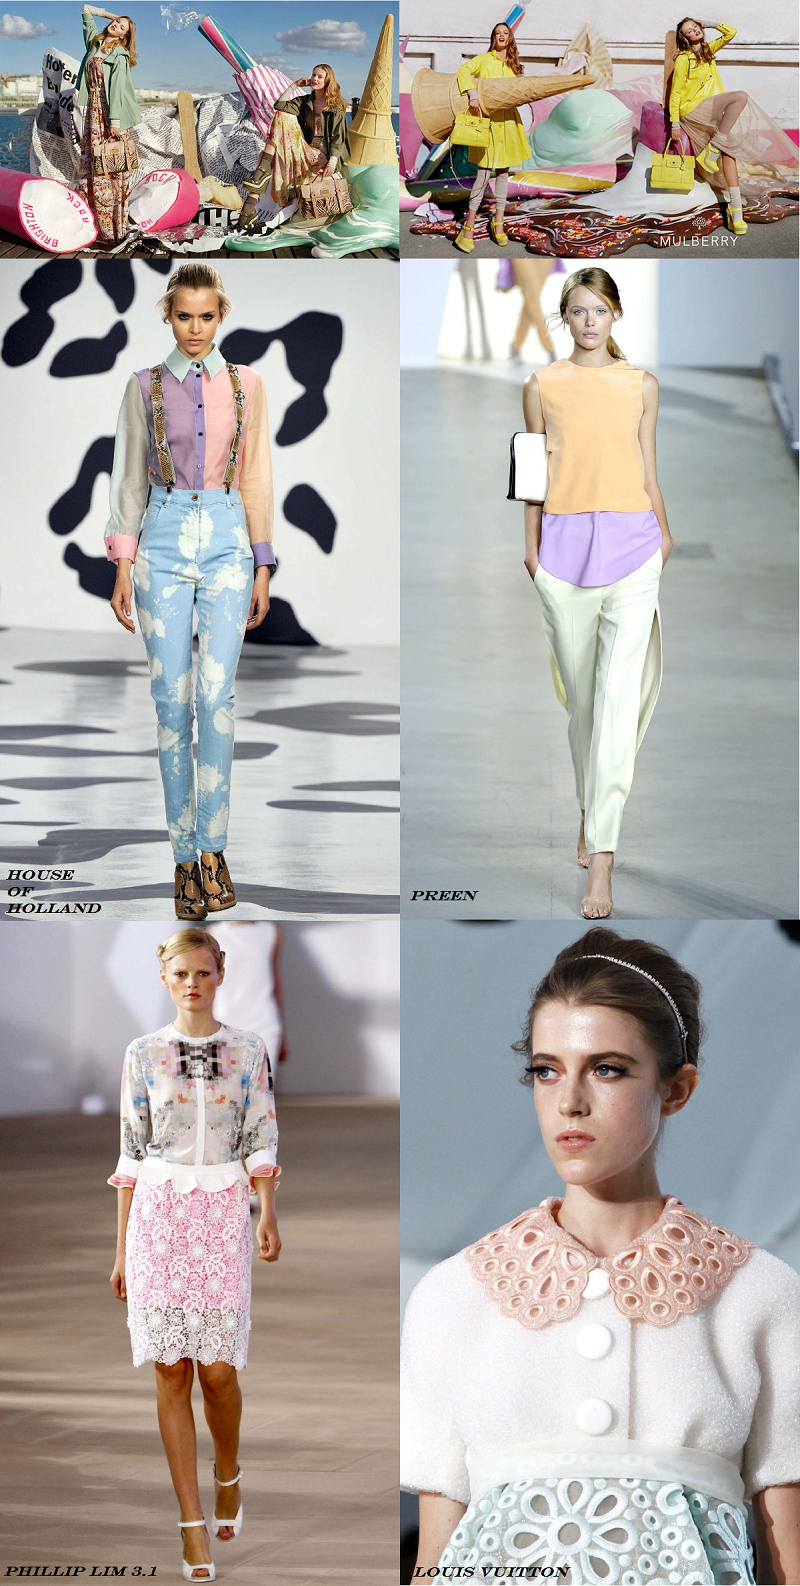 pastel trend, sugary colours, pink, baby blue, mint green, Mulberry, Louis Vuitton, House of Holland, Spring/Summer 2012